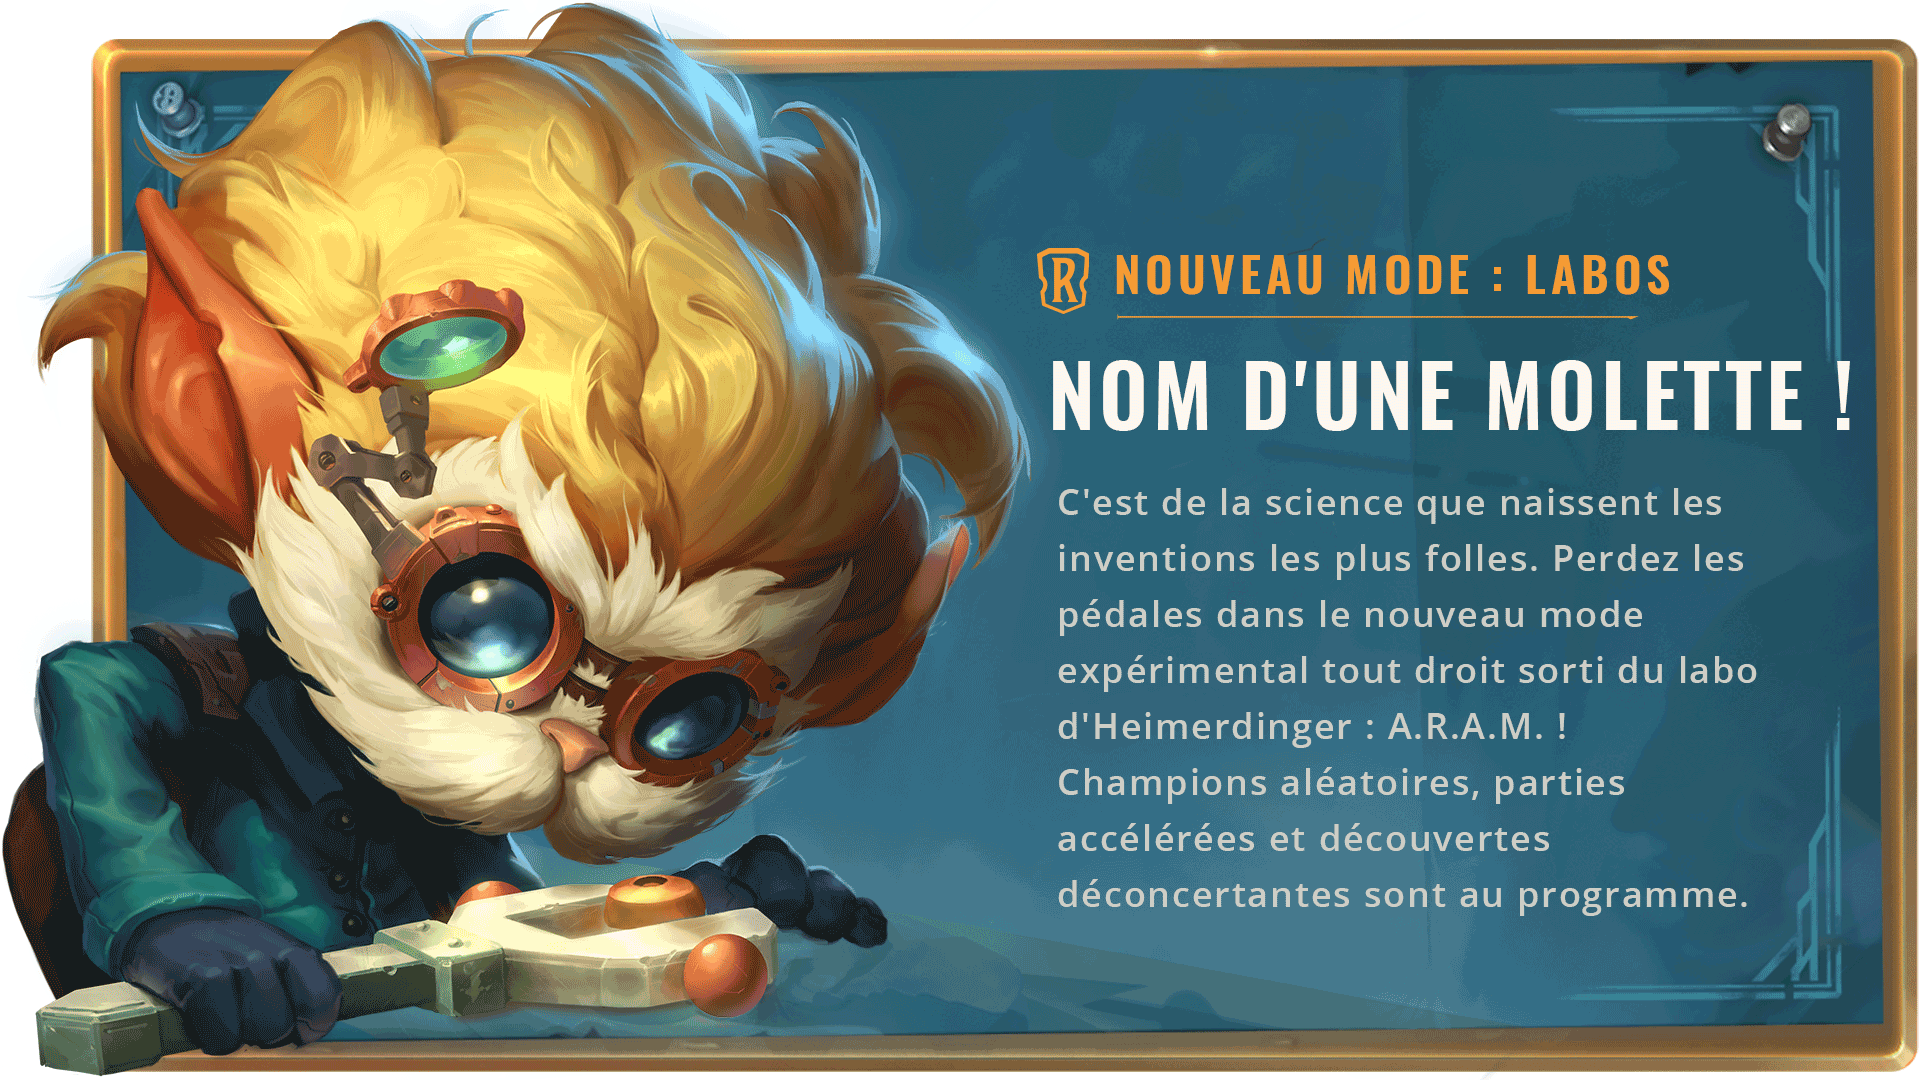 LABS_MODAL_FR.png